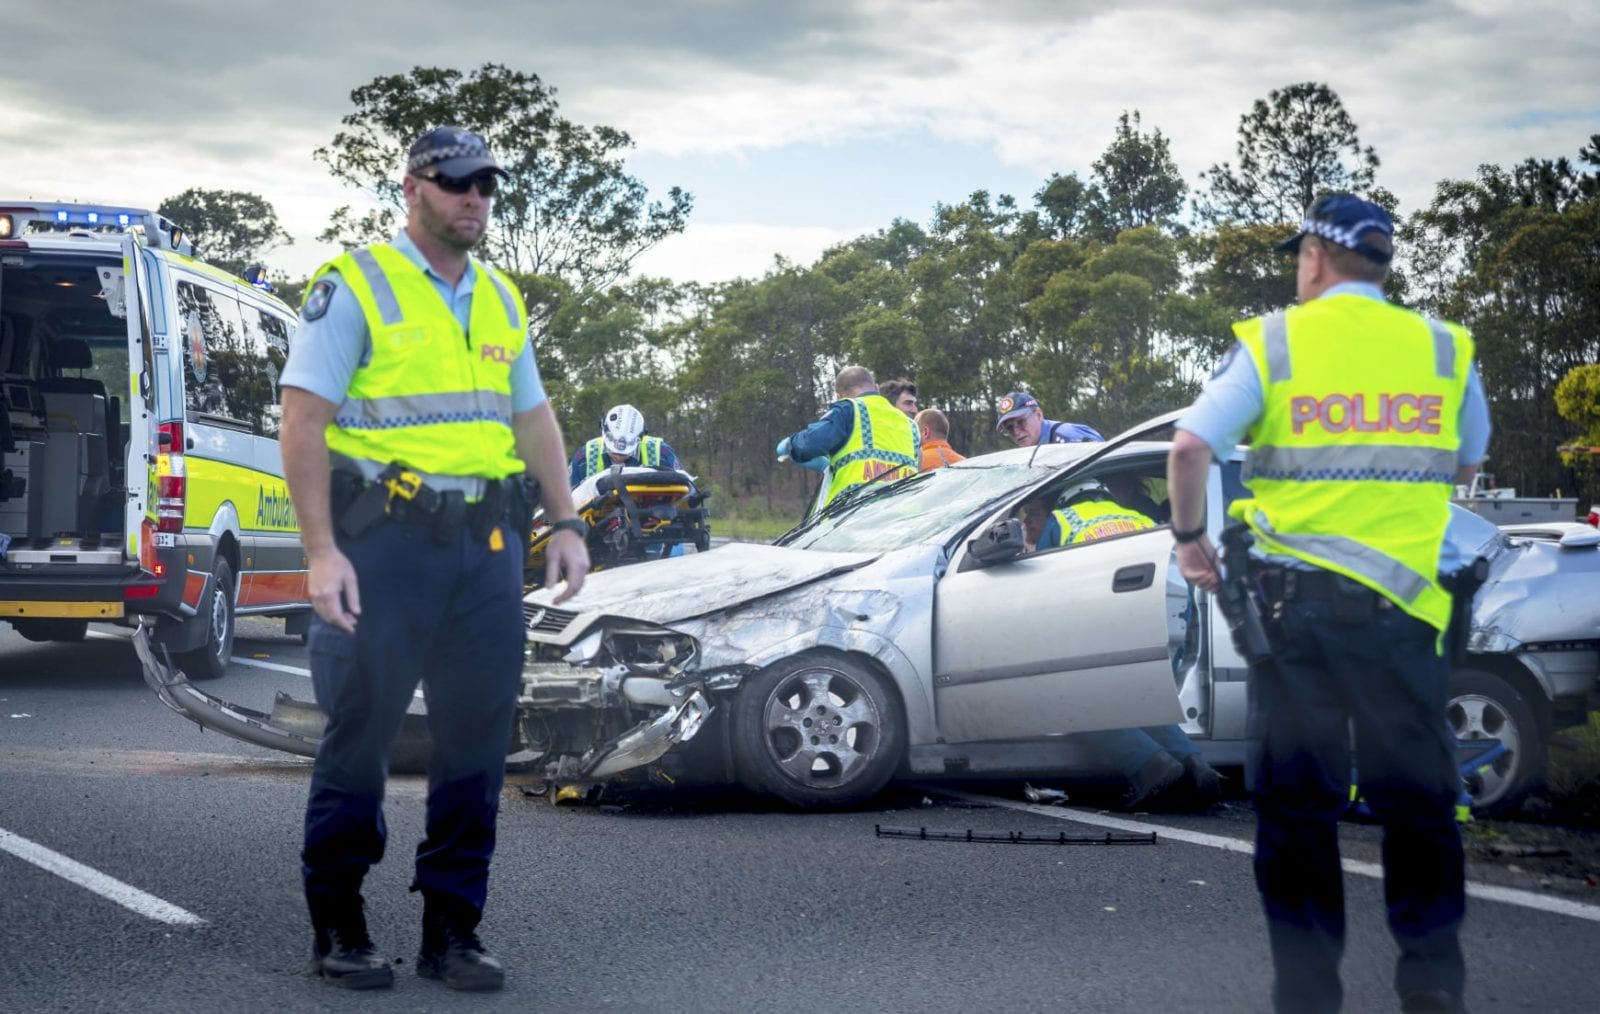 Stock Photo Of Police Examining The Scenes Of A Car Accident